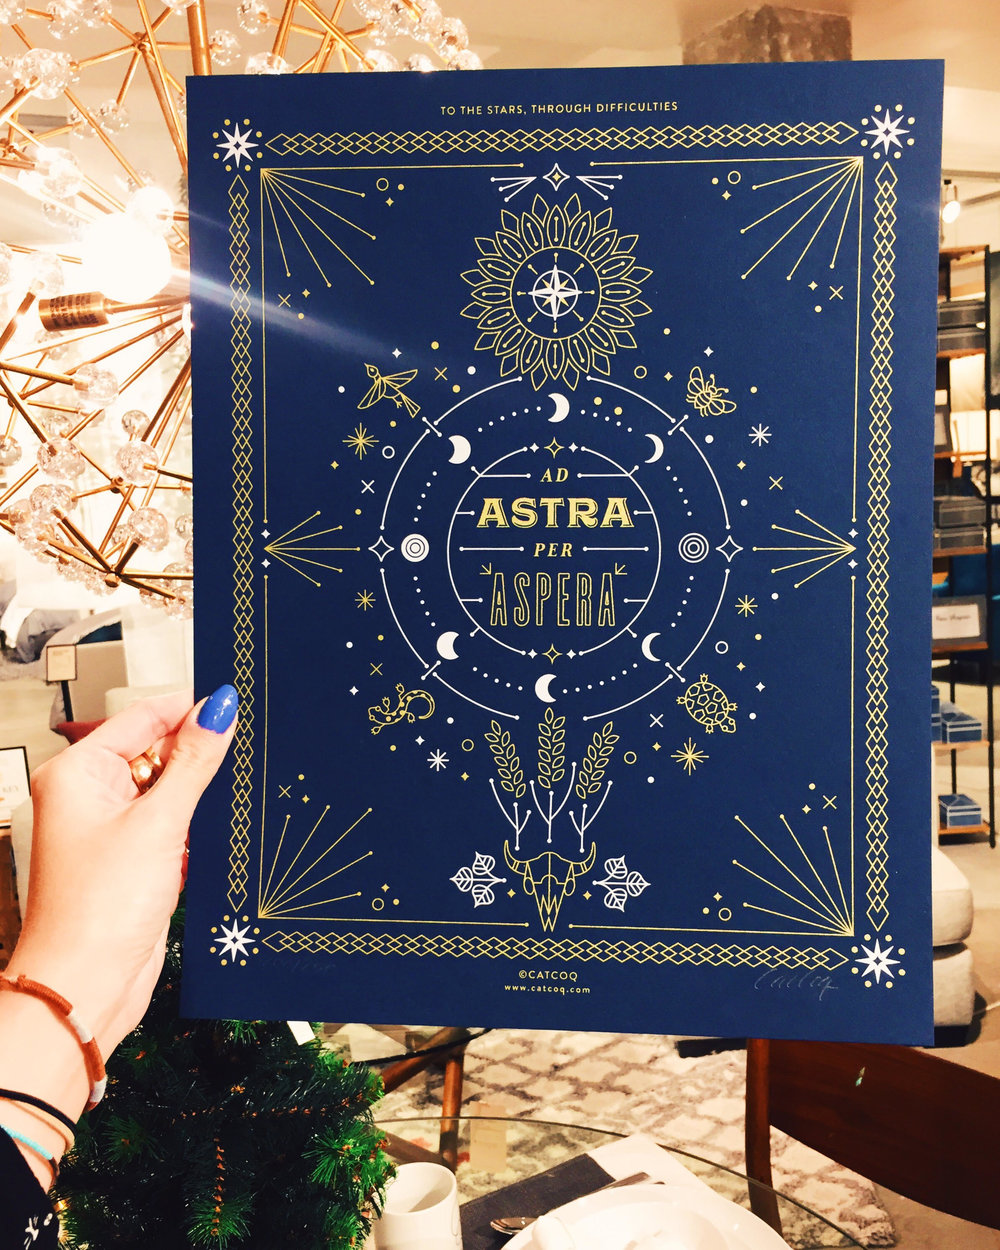 Ad Astra Per Aspera available  here .